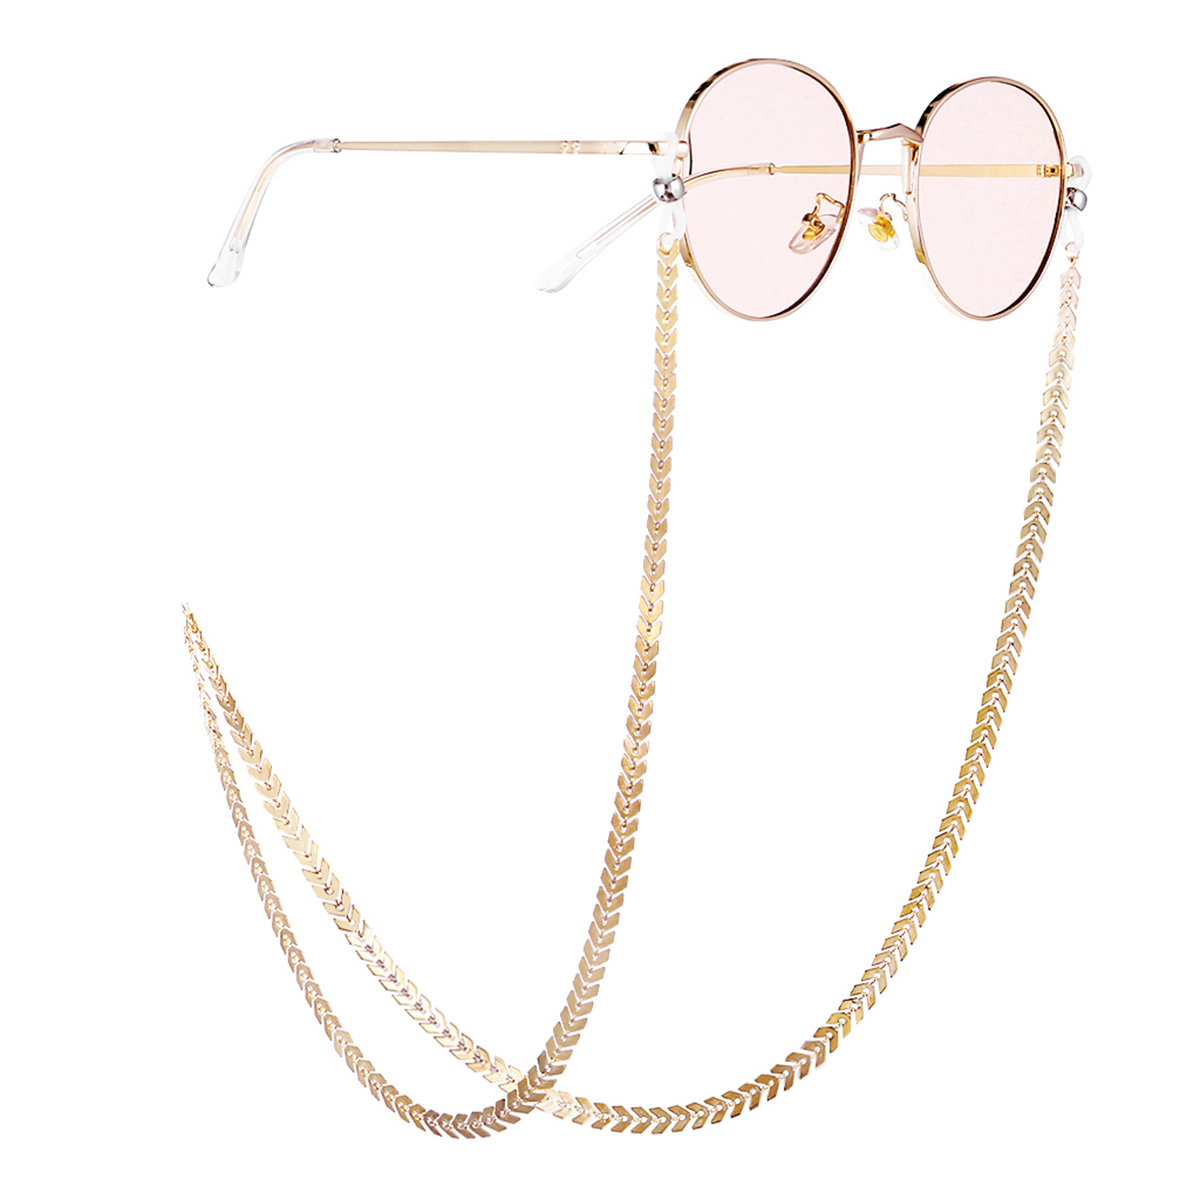 Fashion Glasses Chain Ins Gold Geometric Links Noble Luxury Temperament Glasses Chain Ladies Hot New 2019